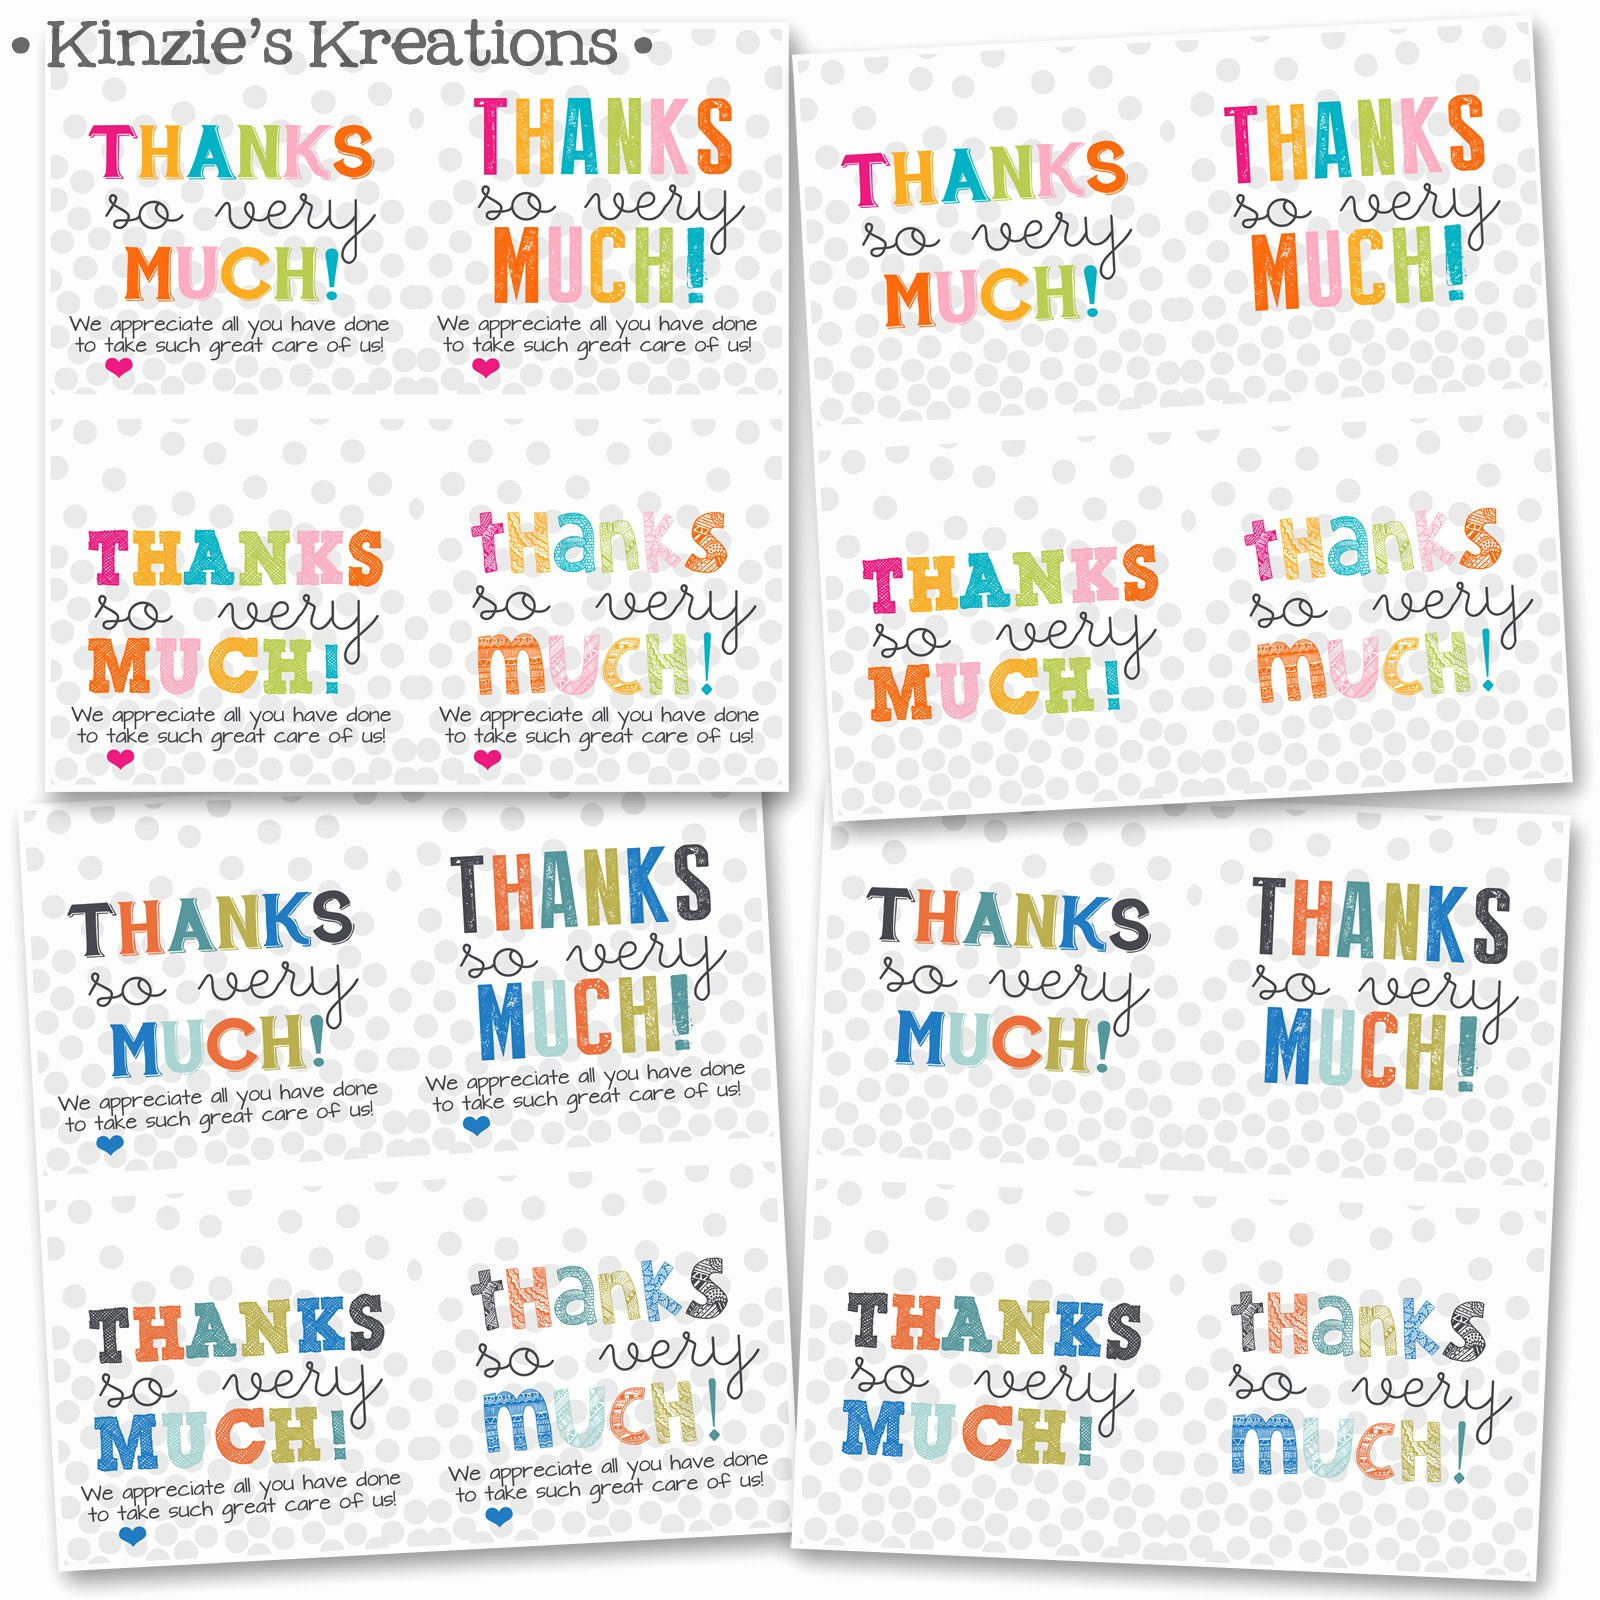 Printable Thank You Tags Lovely Kinzie S Kreations Hospital Thank You Cards